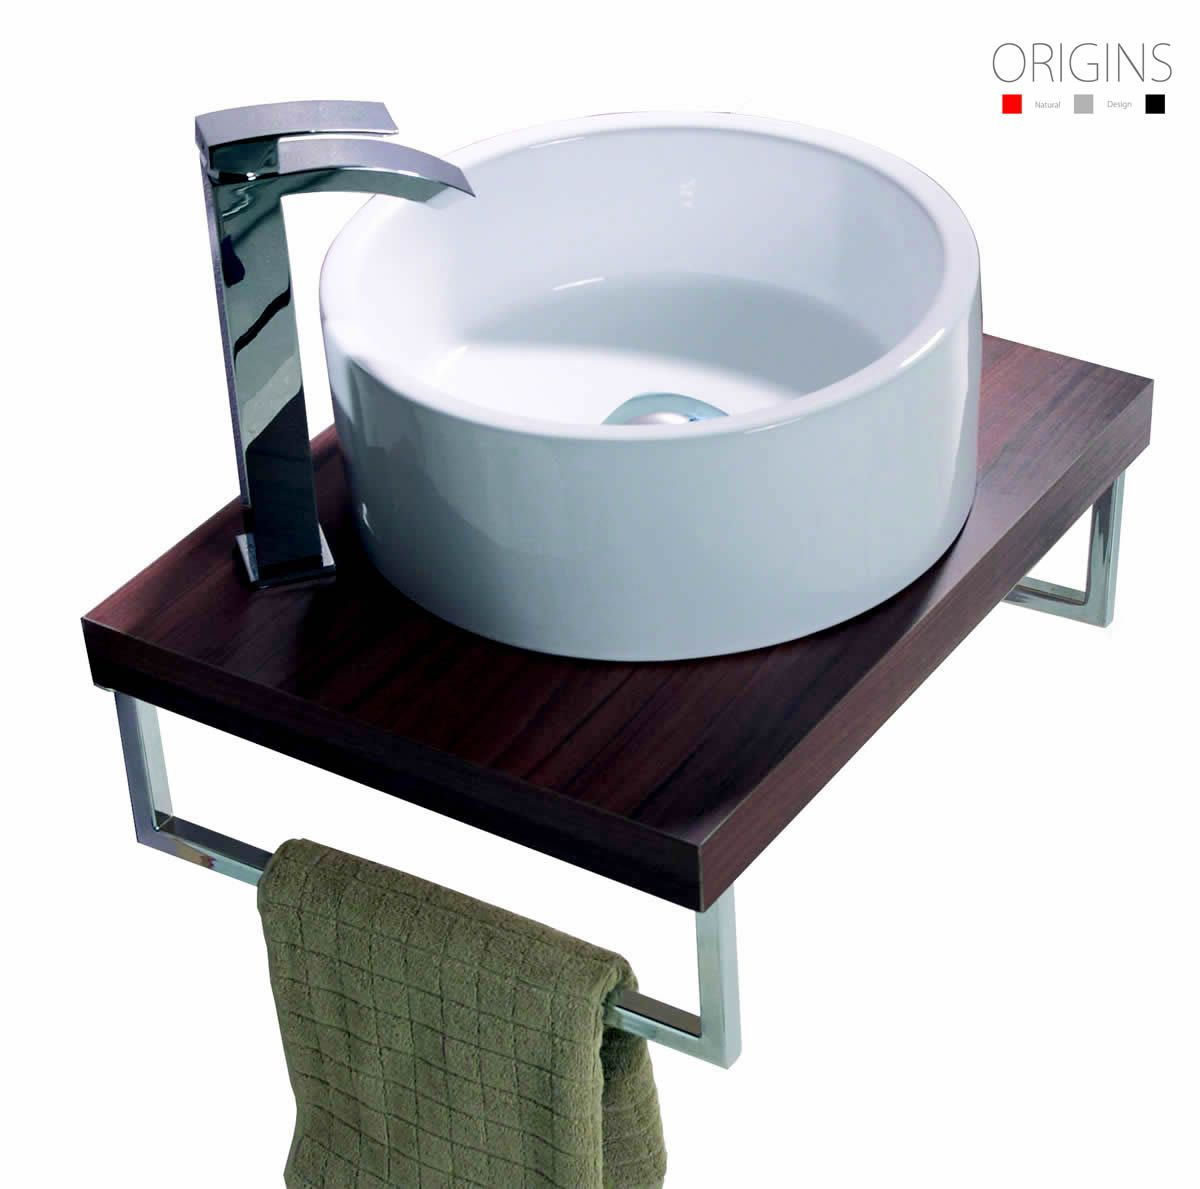 Origins 600mm wall mounted countertop ukbathrooms for Wall mounted bathroom countertop